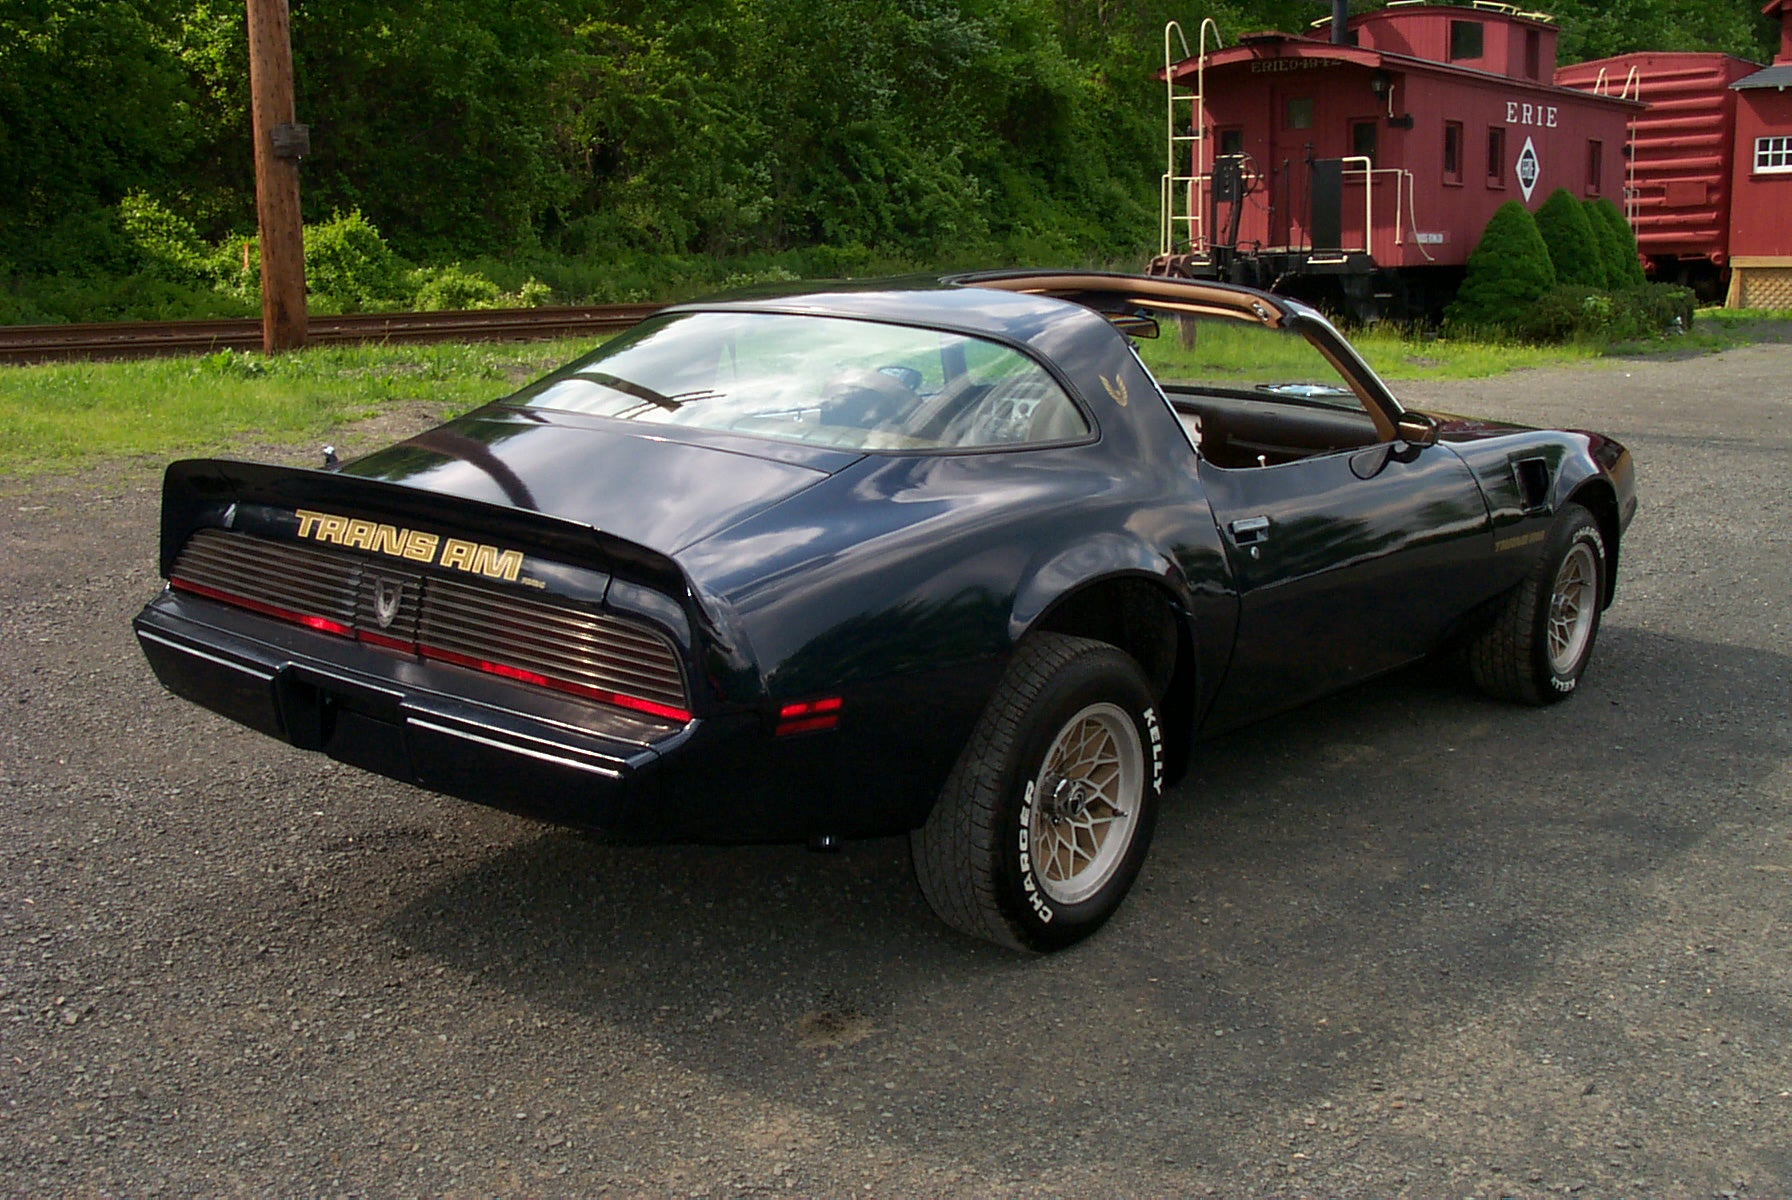 Pontiac Trans Am Wallpaper And Background Image 1792x1200